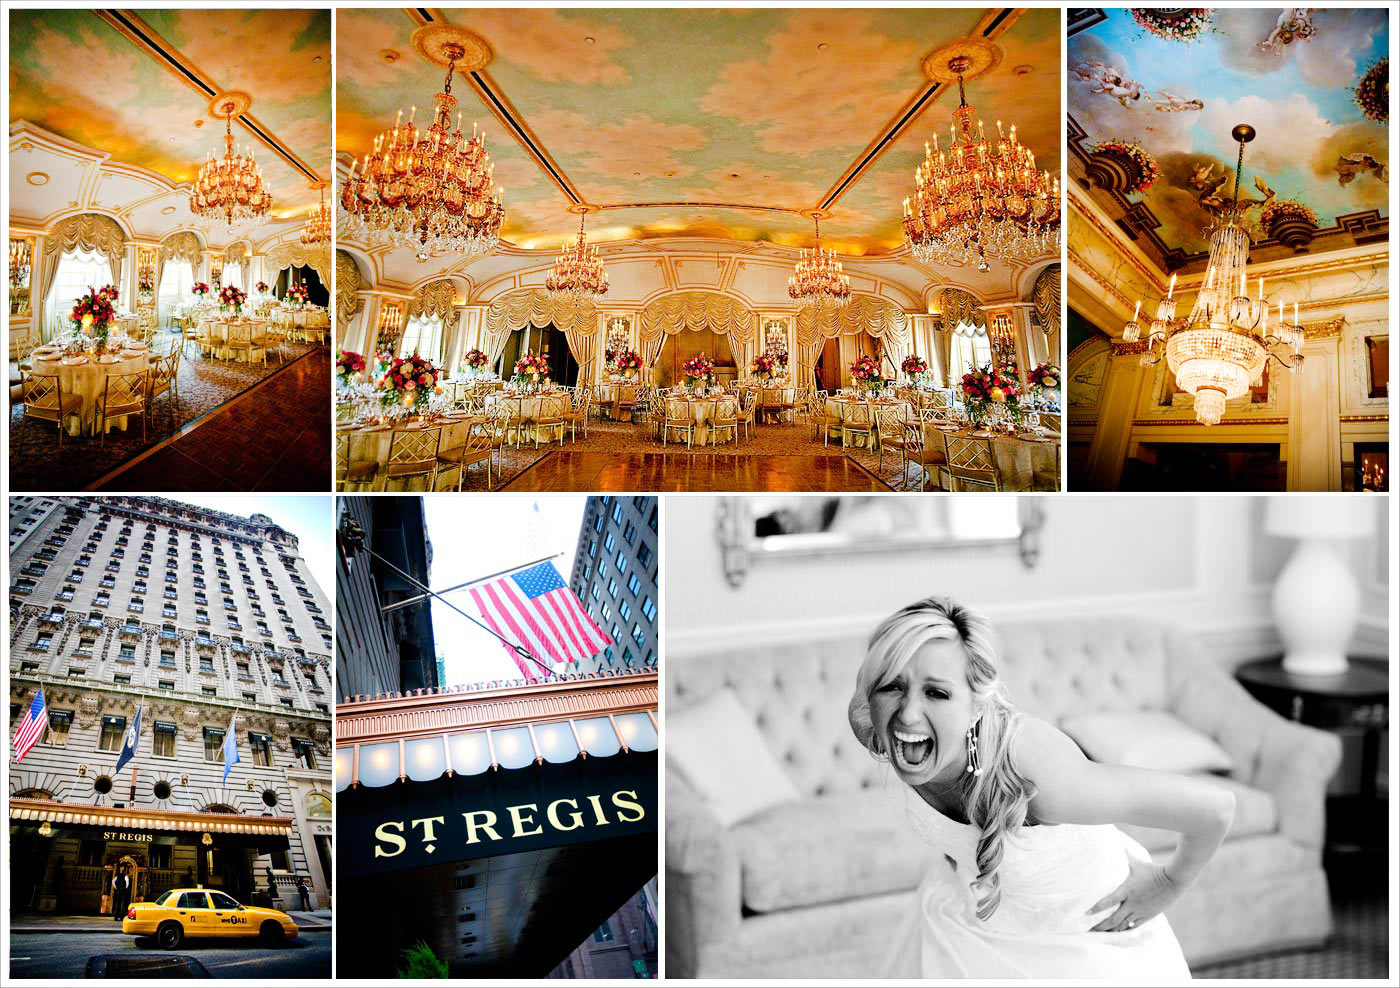 st-regis-wedding.jpg